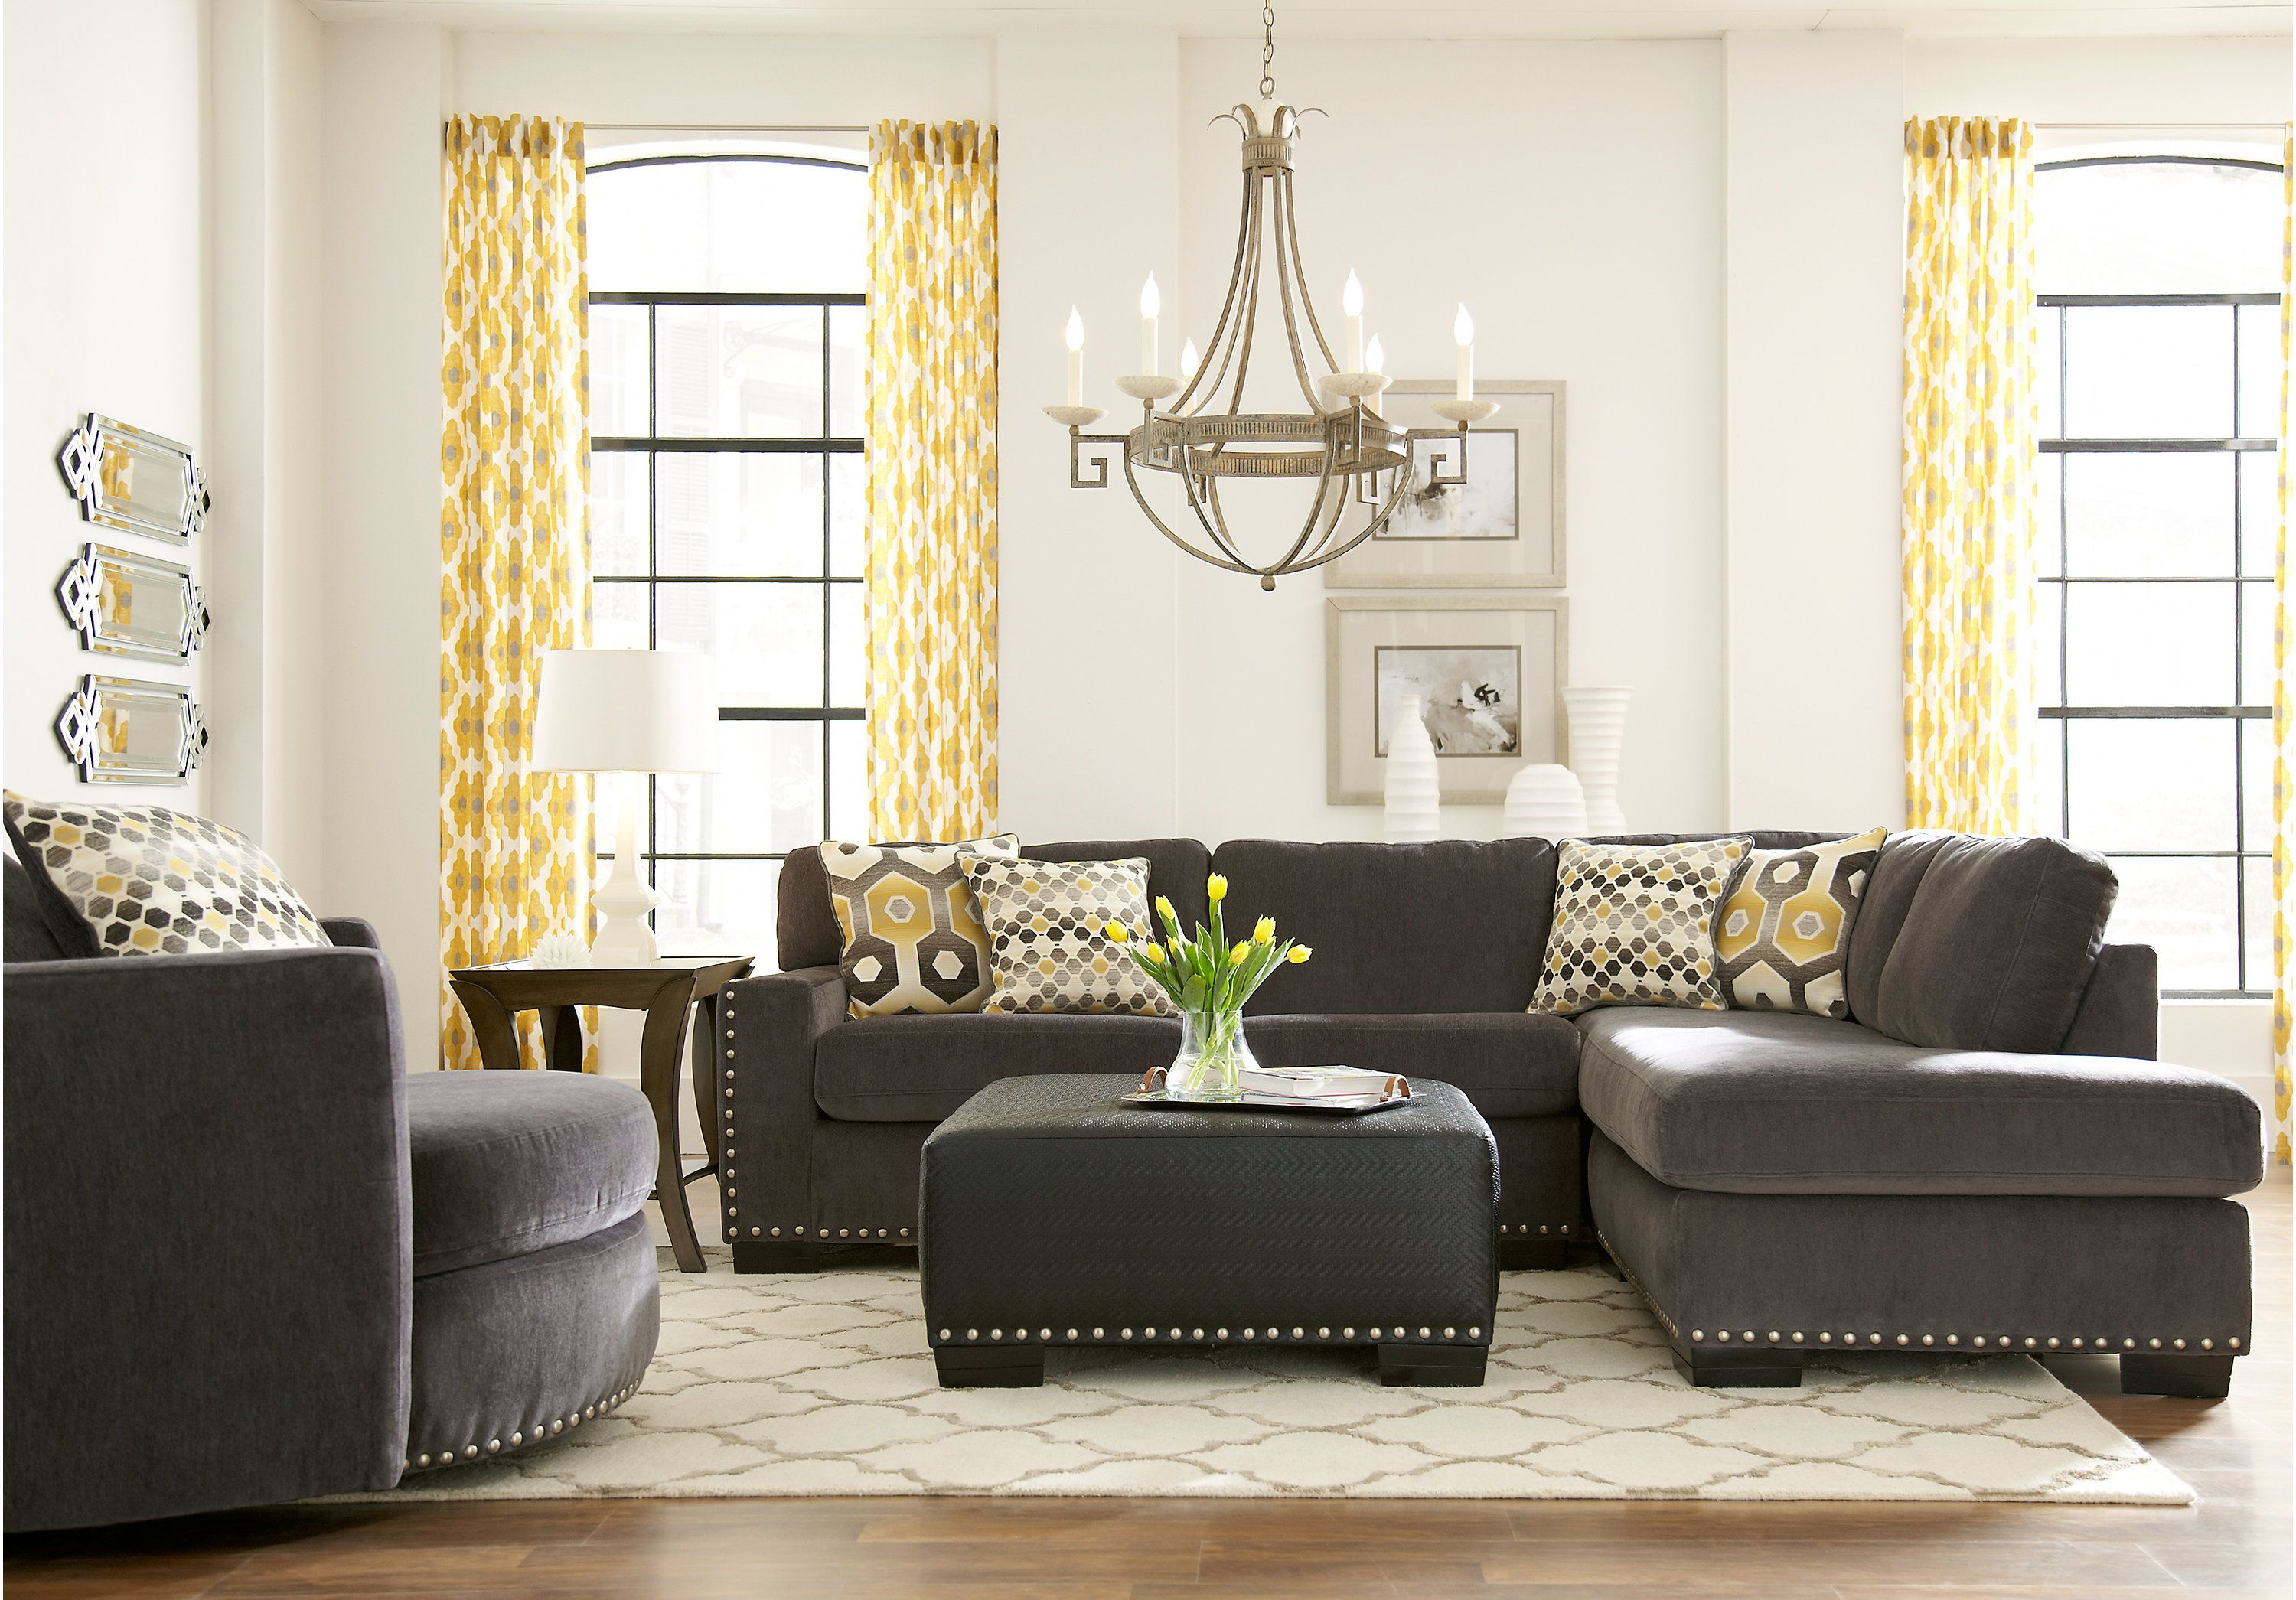 Picture Of Sofia Vergara Laguna Beach 2 Pc Sectional From Sectionals Furniture